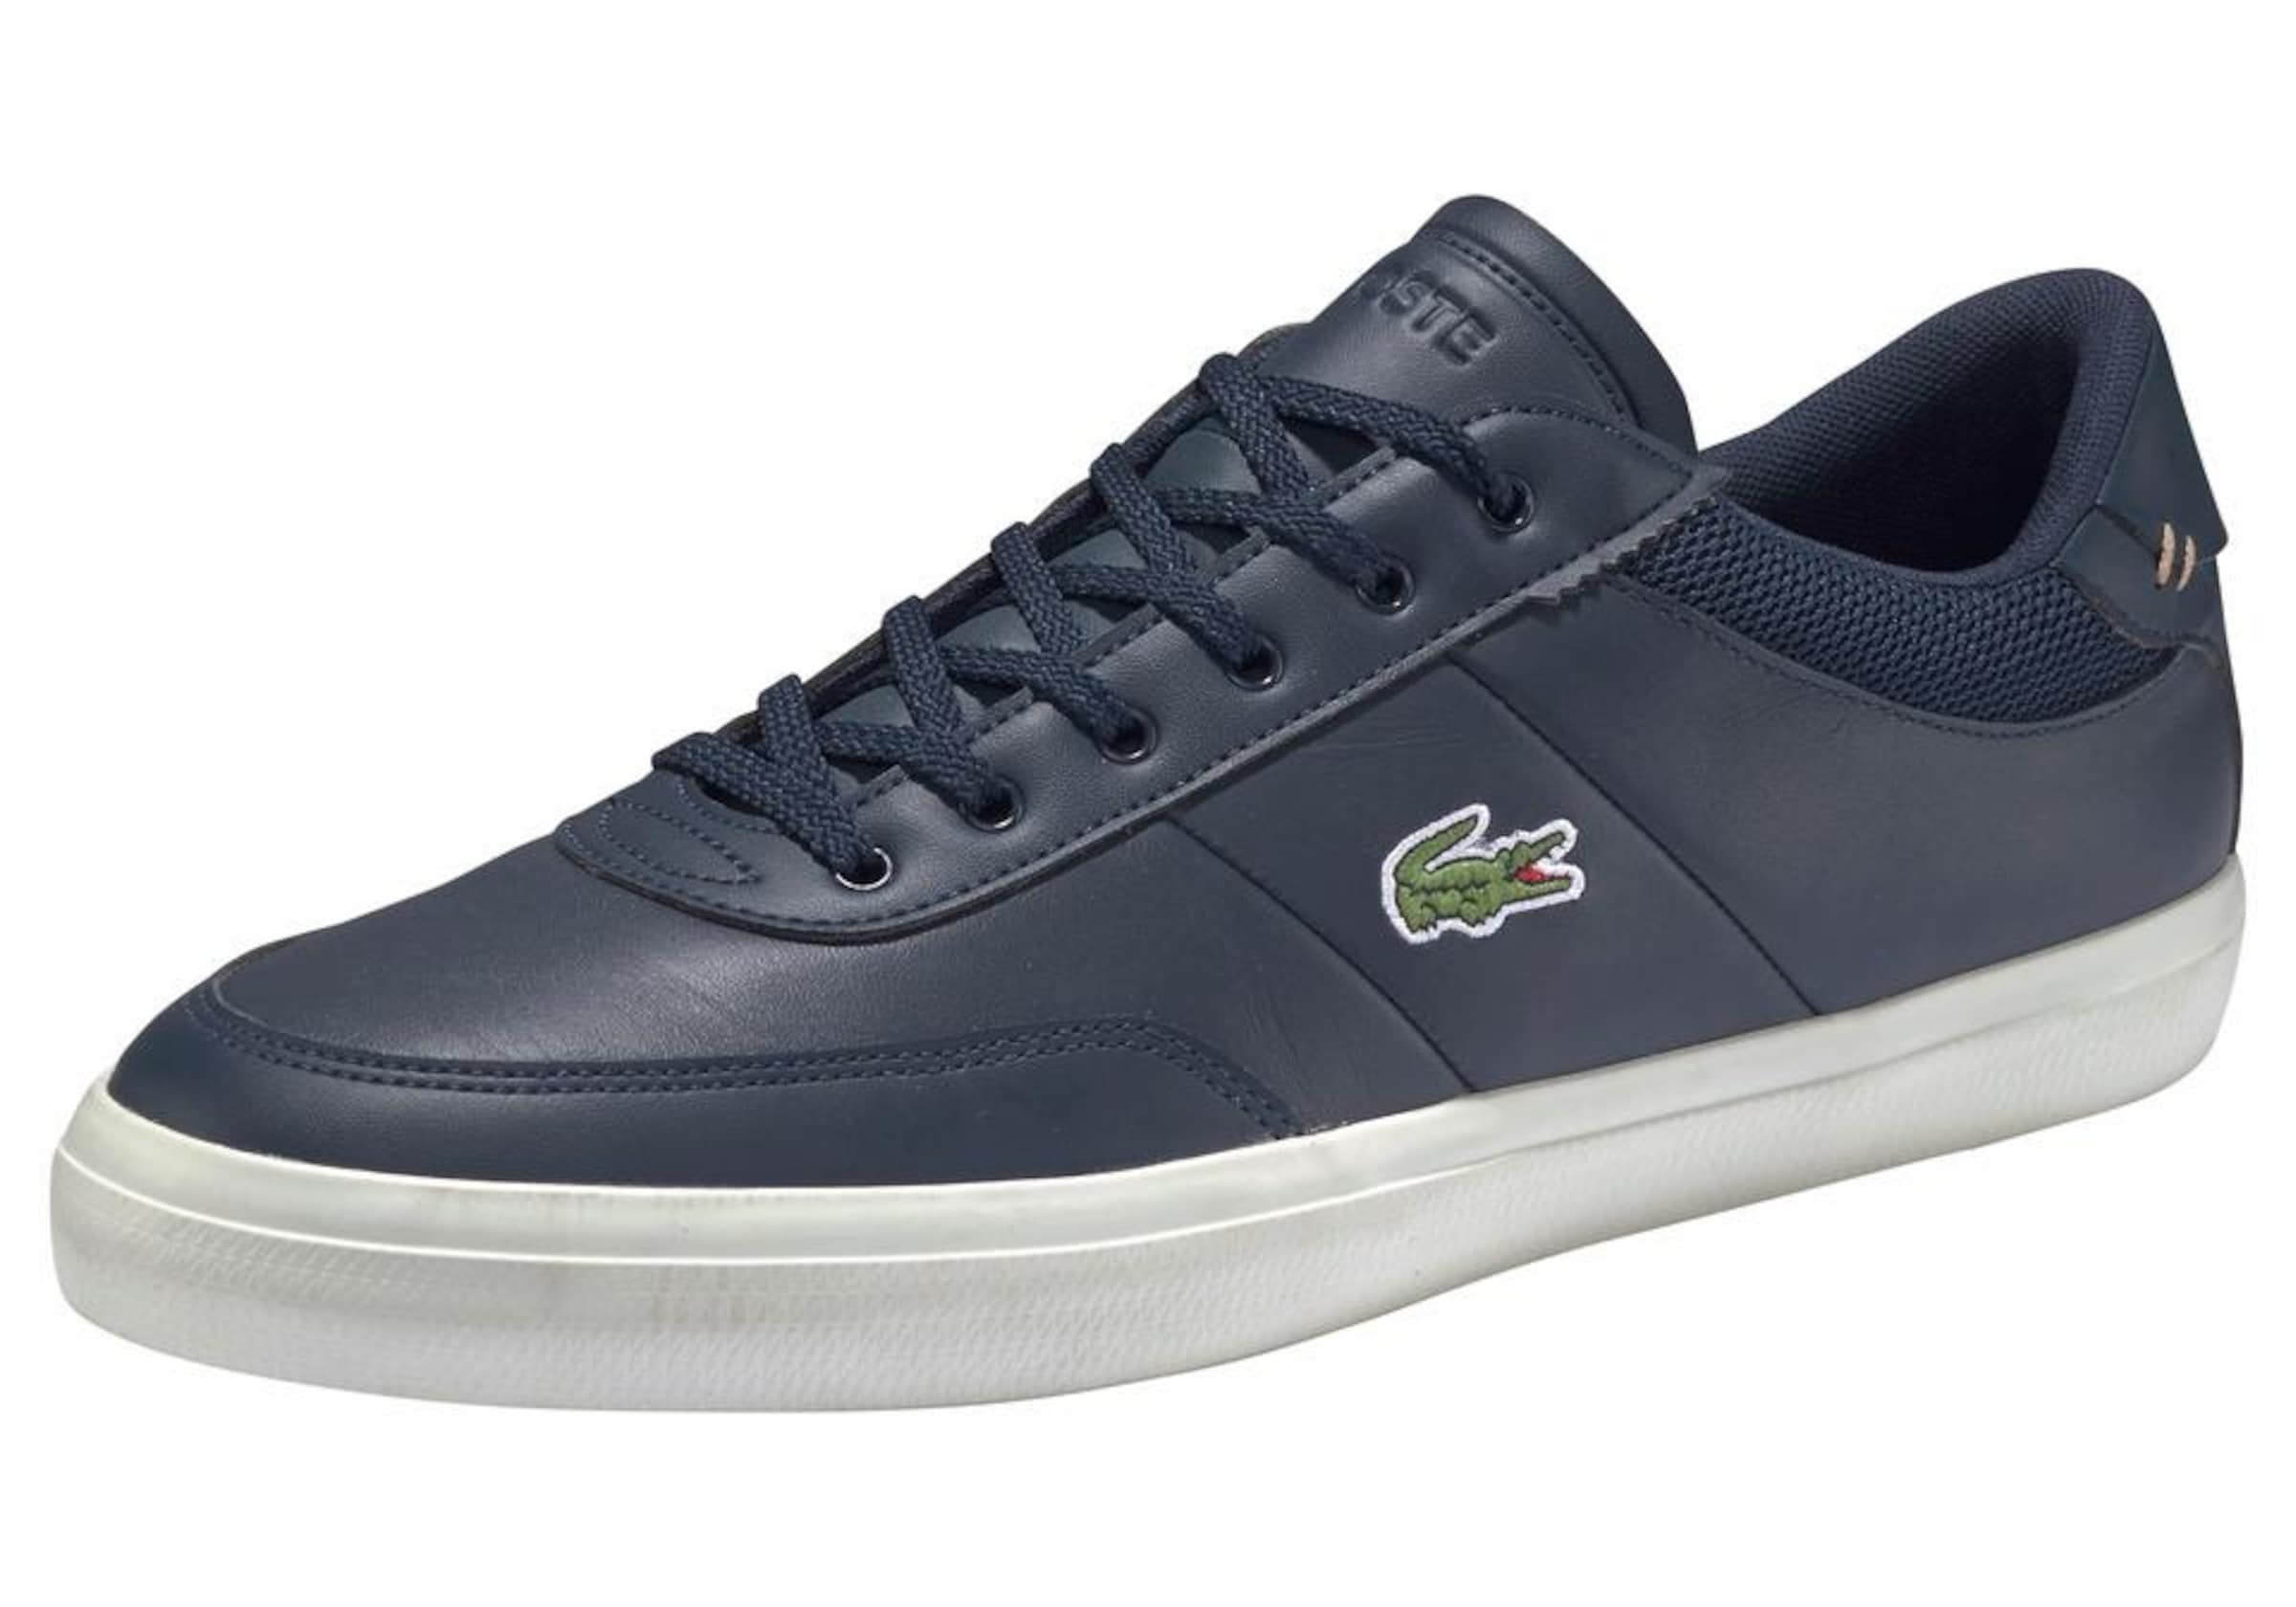 LACOSTE Sneaker COURT-MASTER 118 2 Hohe Qualität